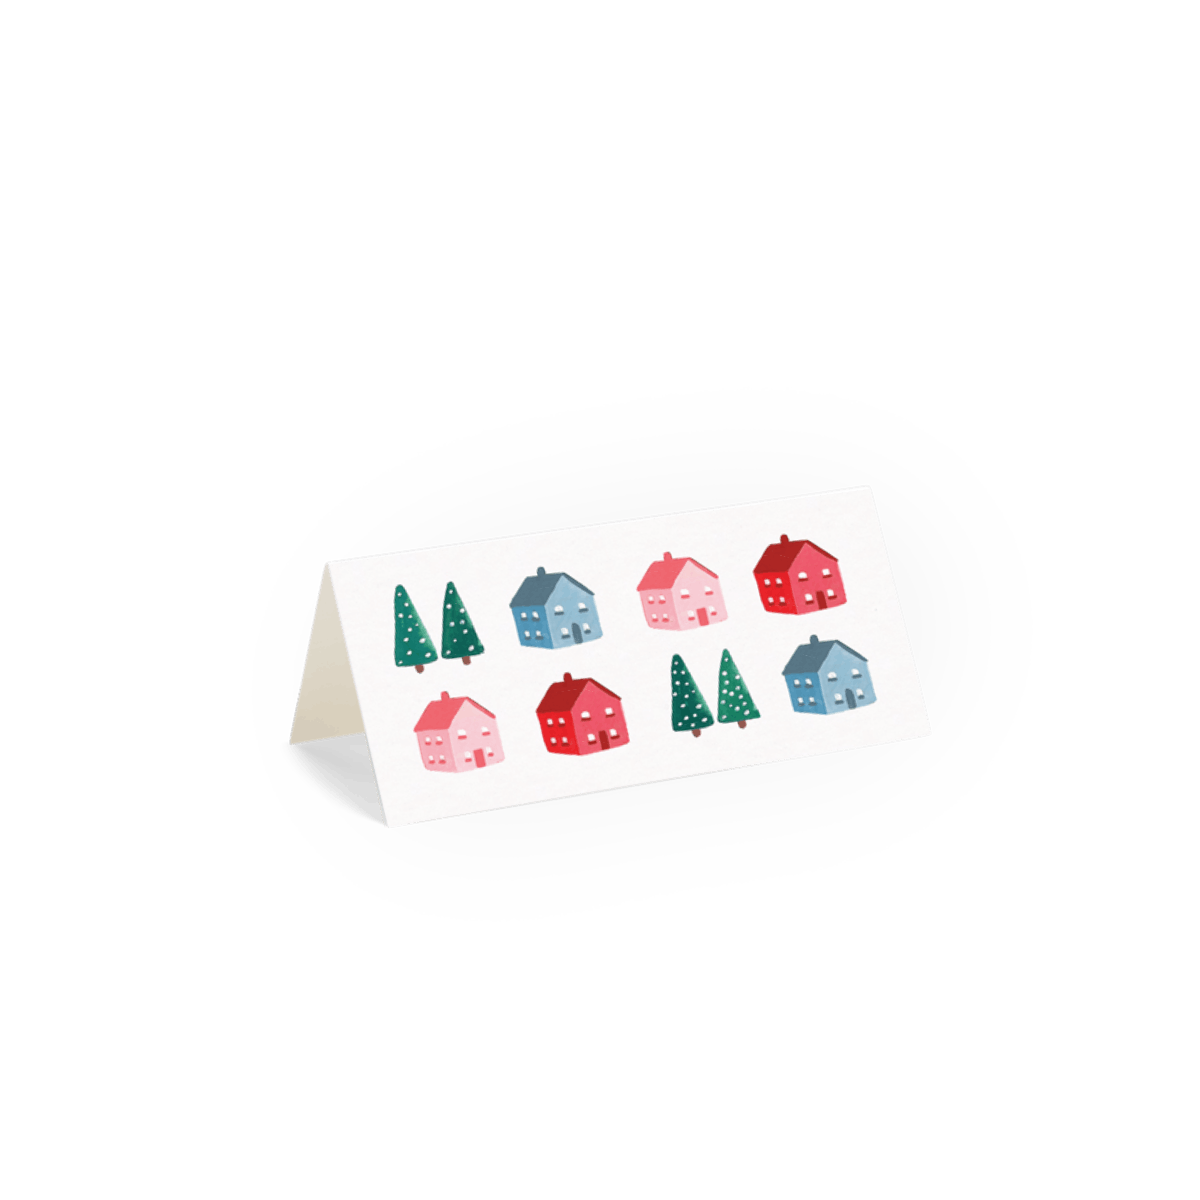 Https%3a%2f%2fwww.papier.com%2fproduct image%2f81970%2f15%2fchristmas town 19756 back 1562058670.png?ixlib=rb 1.1